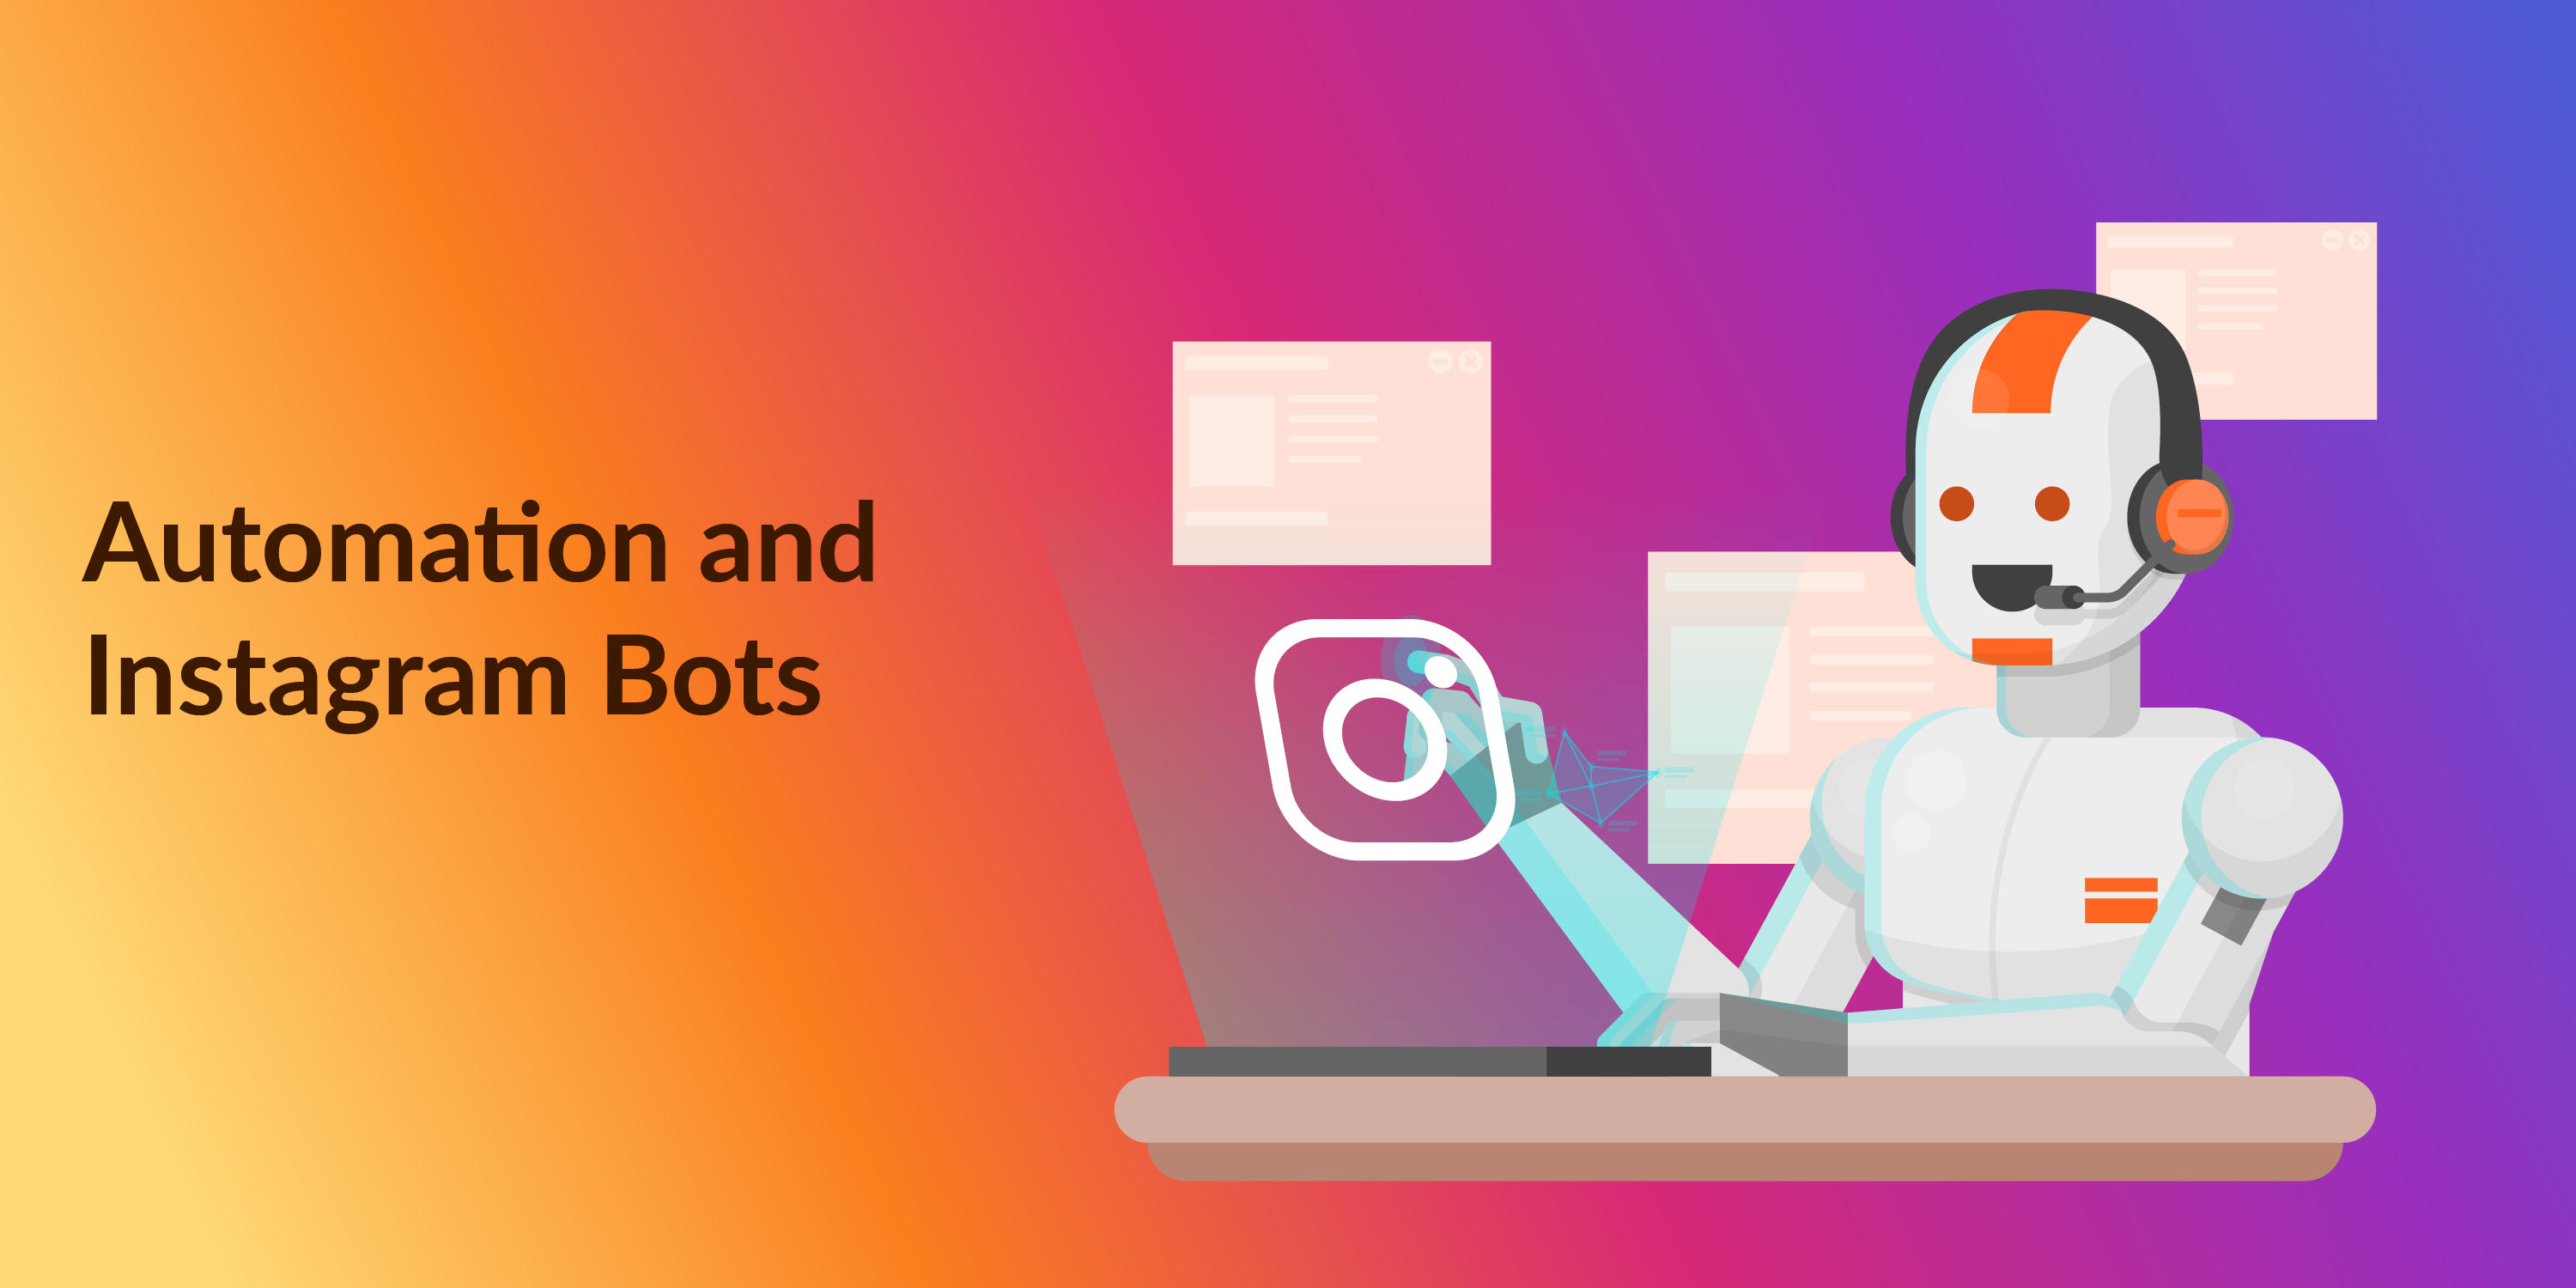 AUTOMATION AND INSTAGRAM BOTS